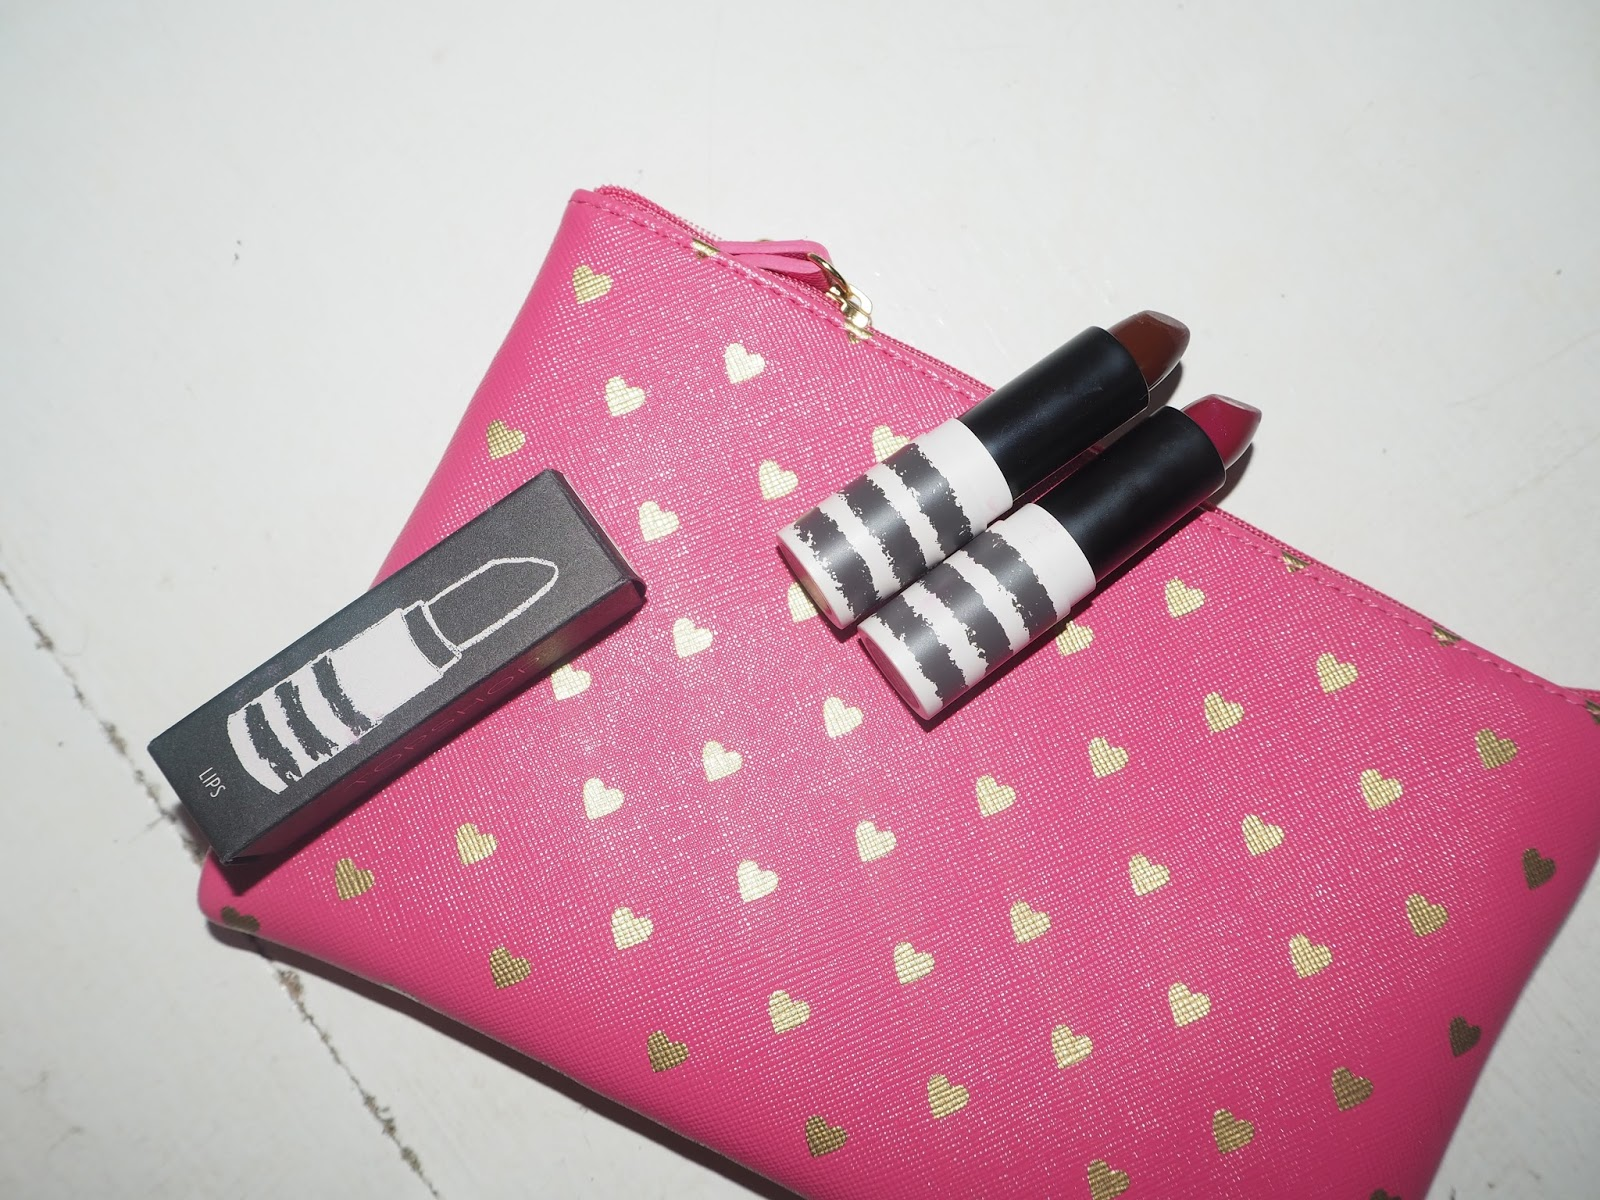 topshop beauty, topshop lipsticks